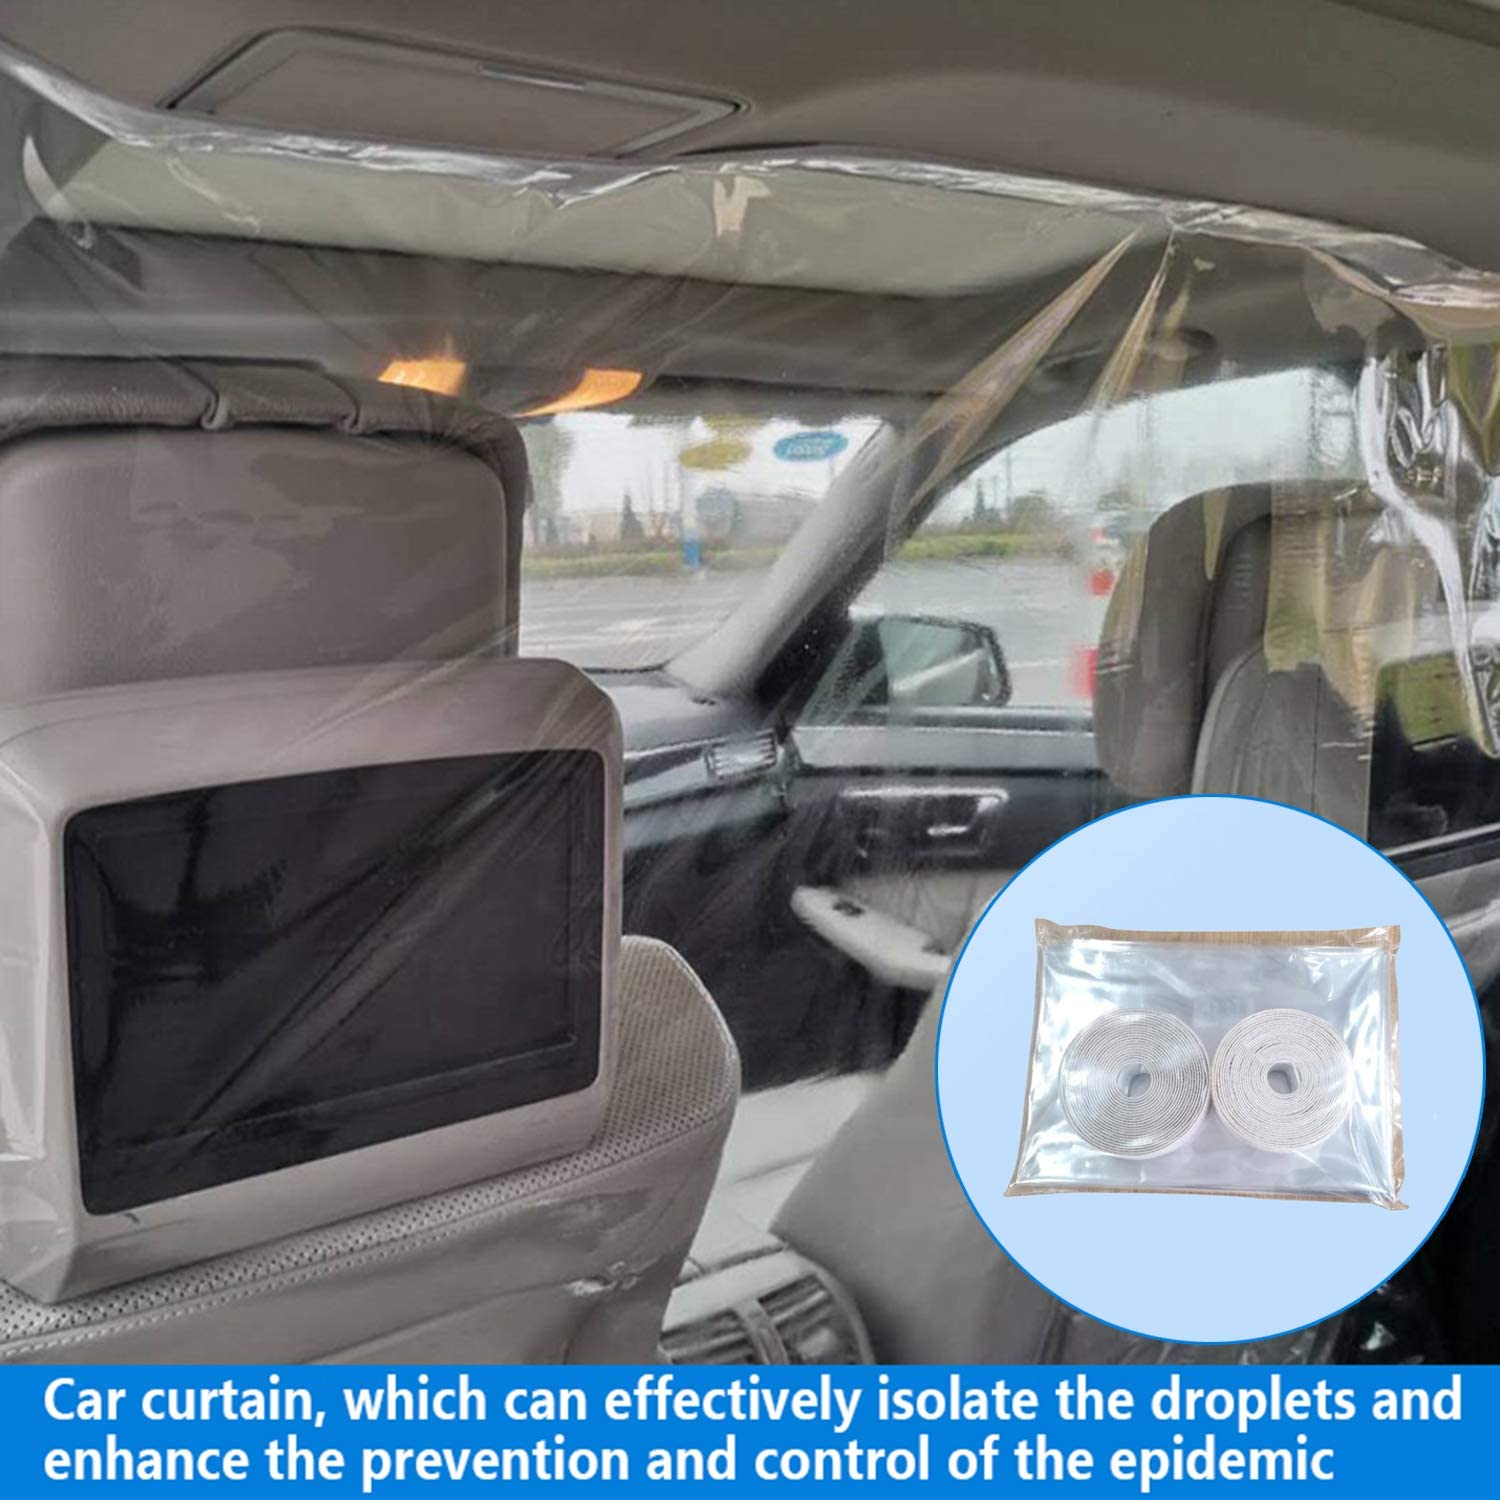 Smoke TOYOUN Car Taxi Driver Seat Isolation Film Transparent Anti-Fog Plastic Film for Driver Seat Divider Auto Partition Protection Film Curtain Against Saliva